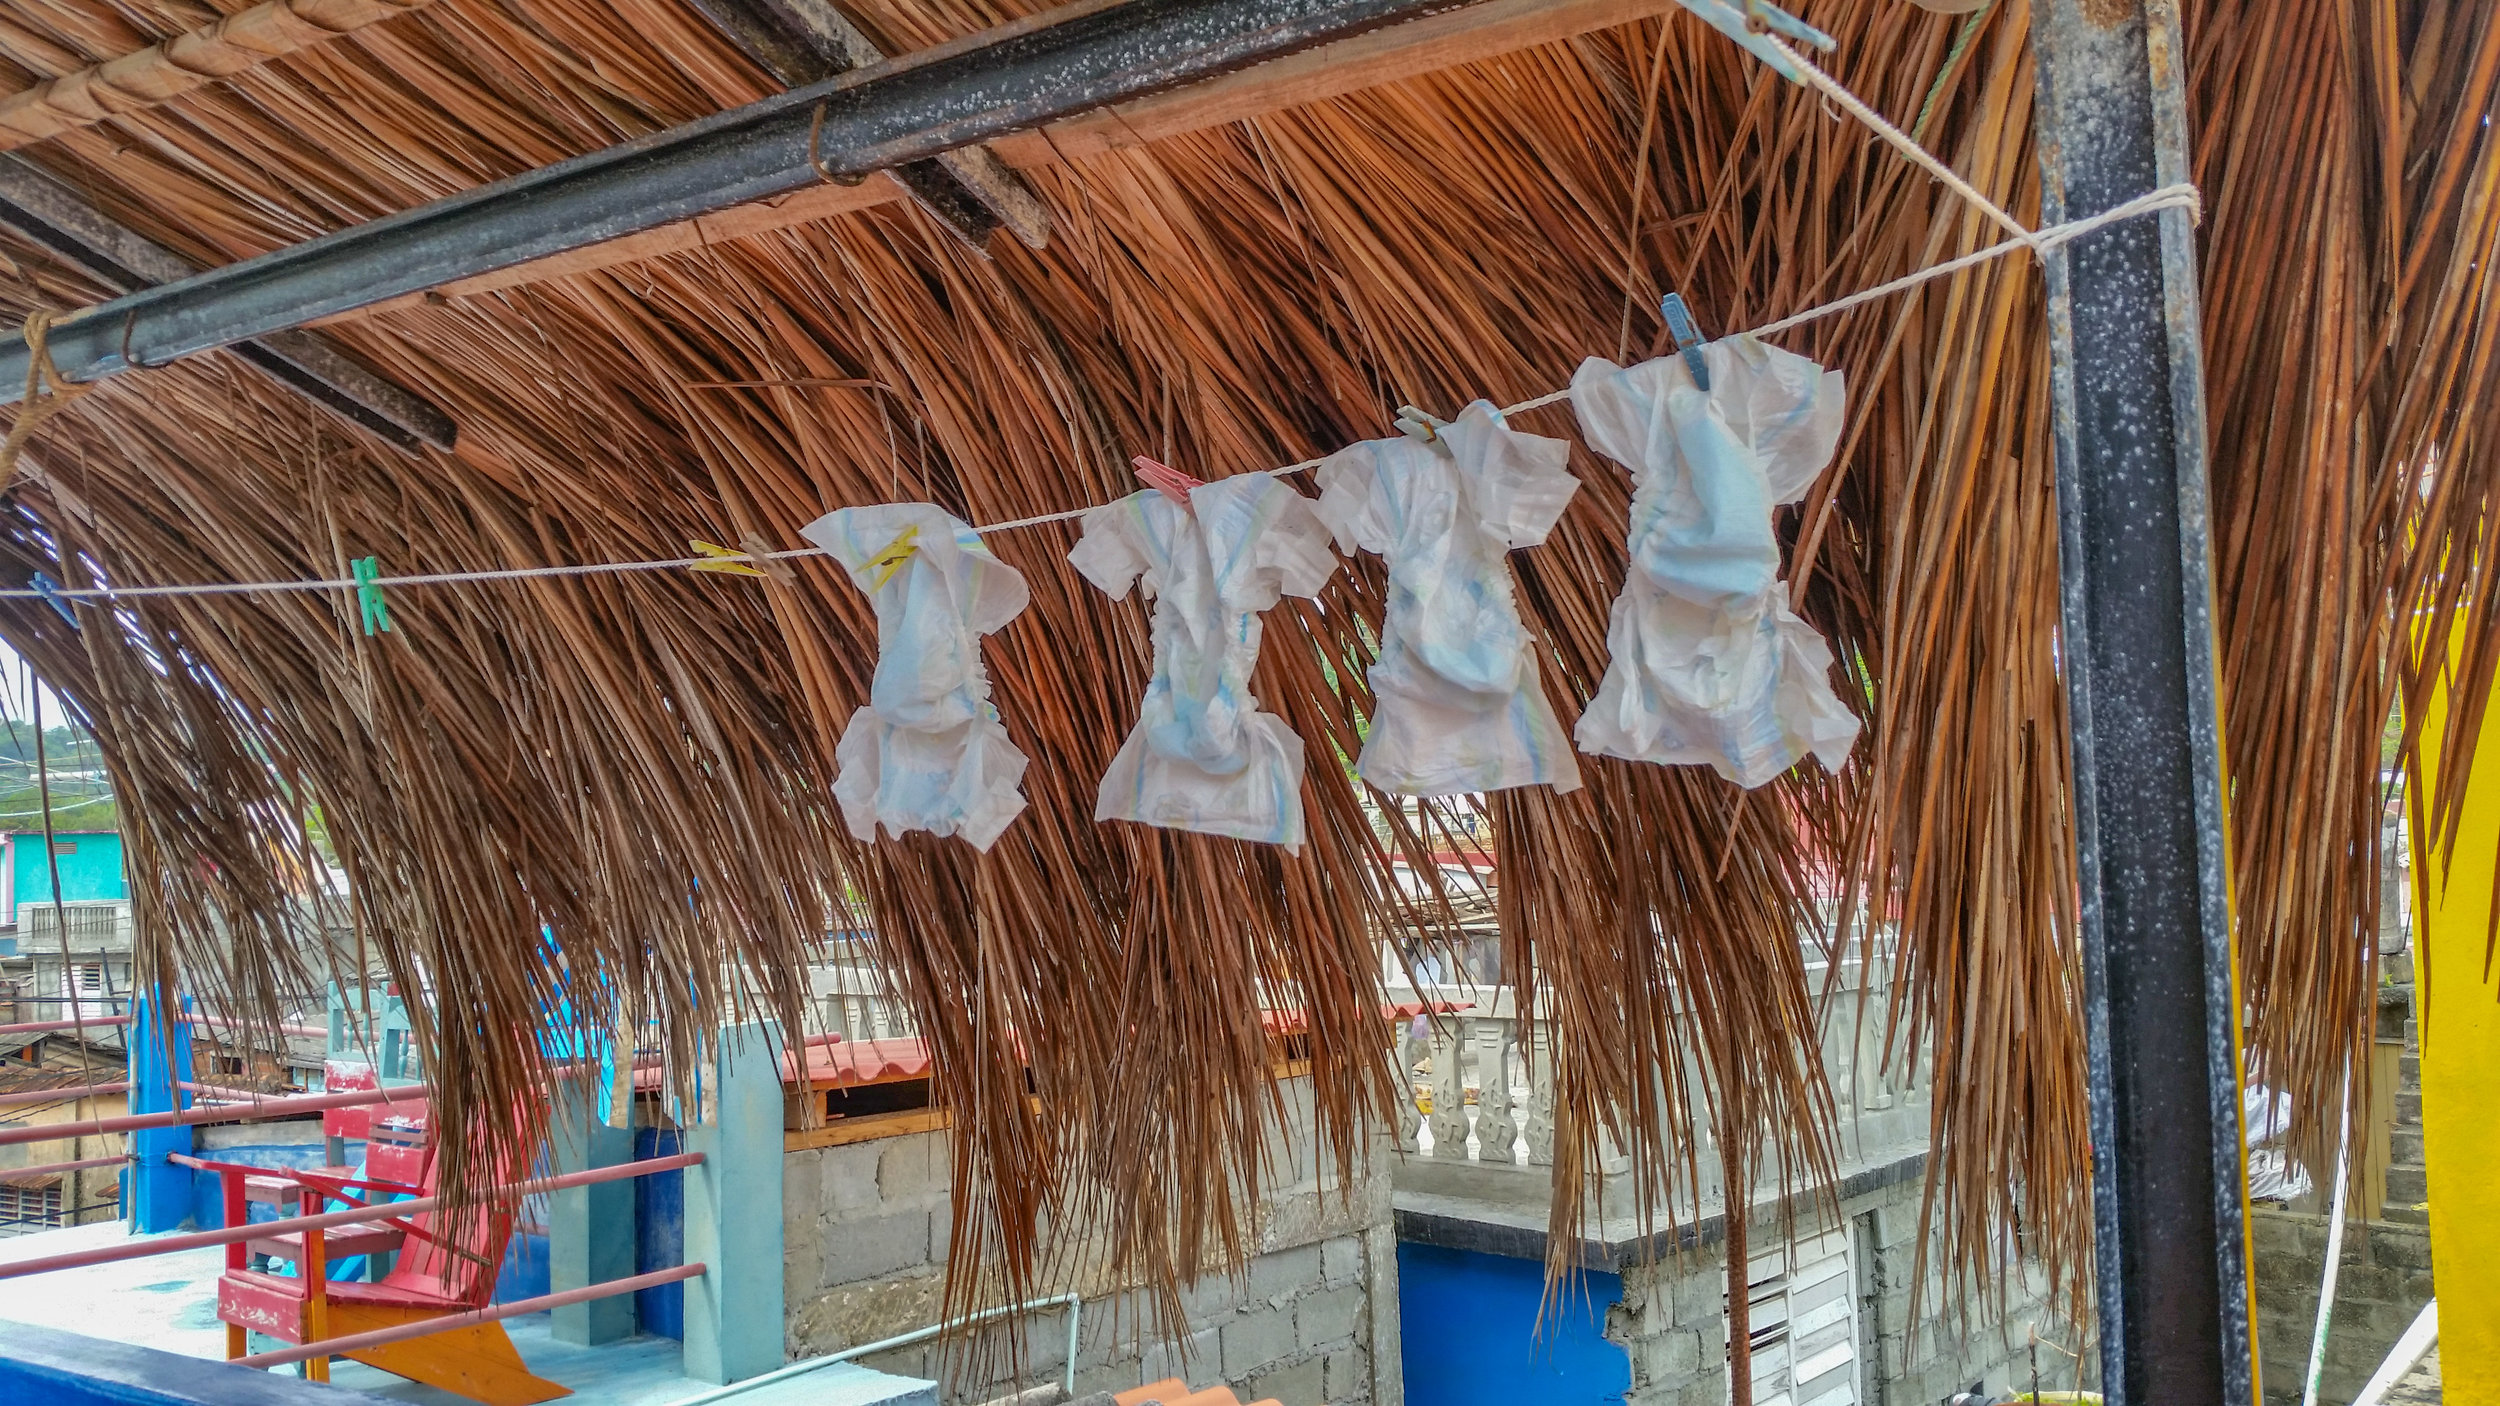 Diapers out to dry and re-use in Baracoa, Guantanamo